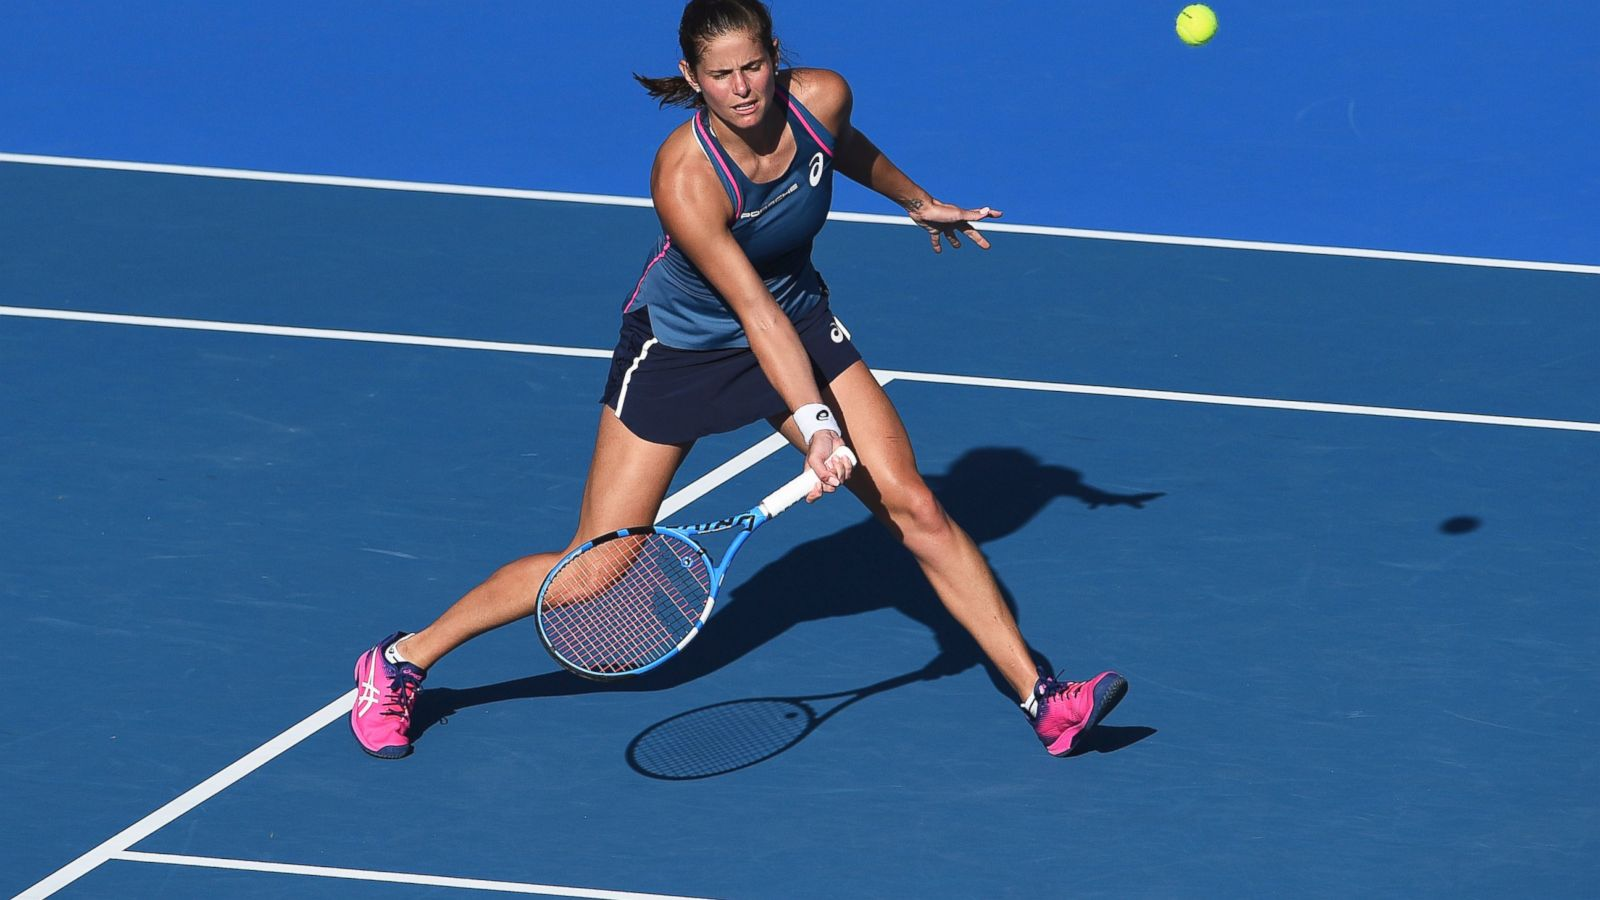 Asb classic tickets